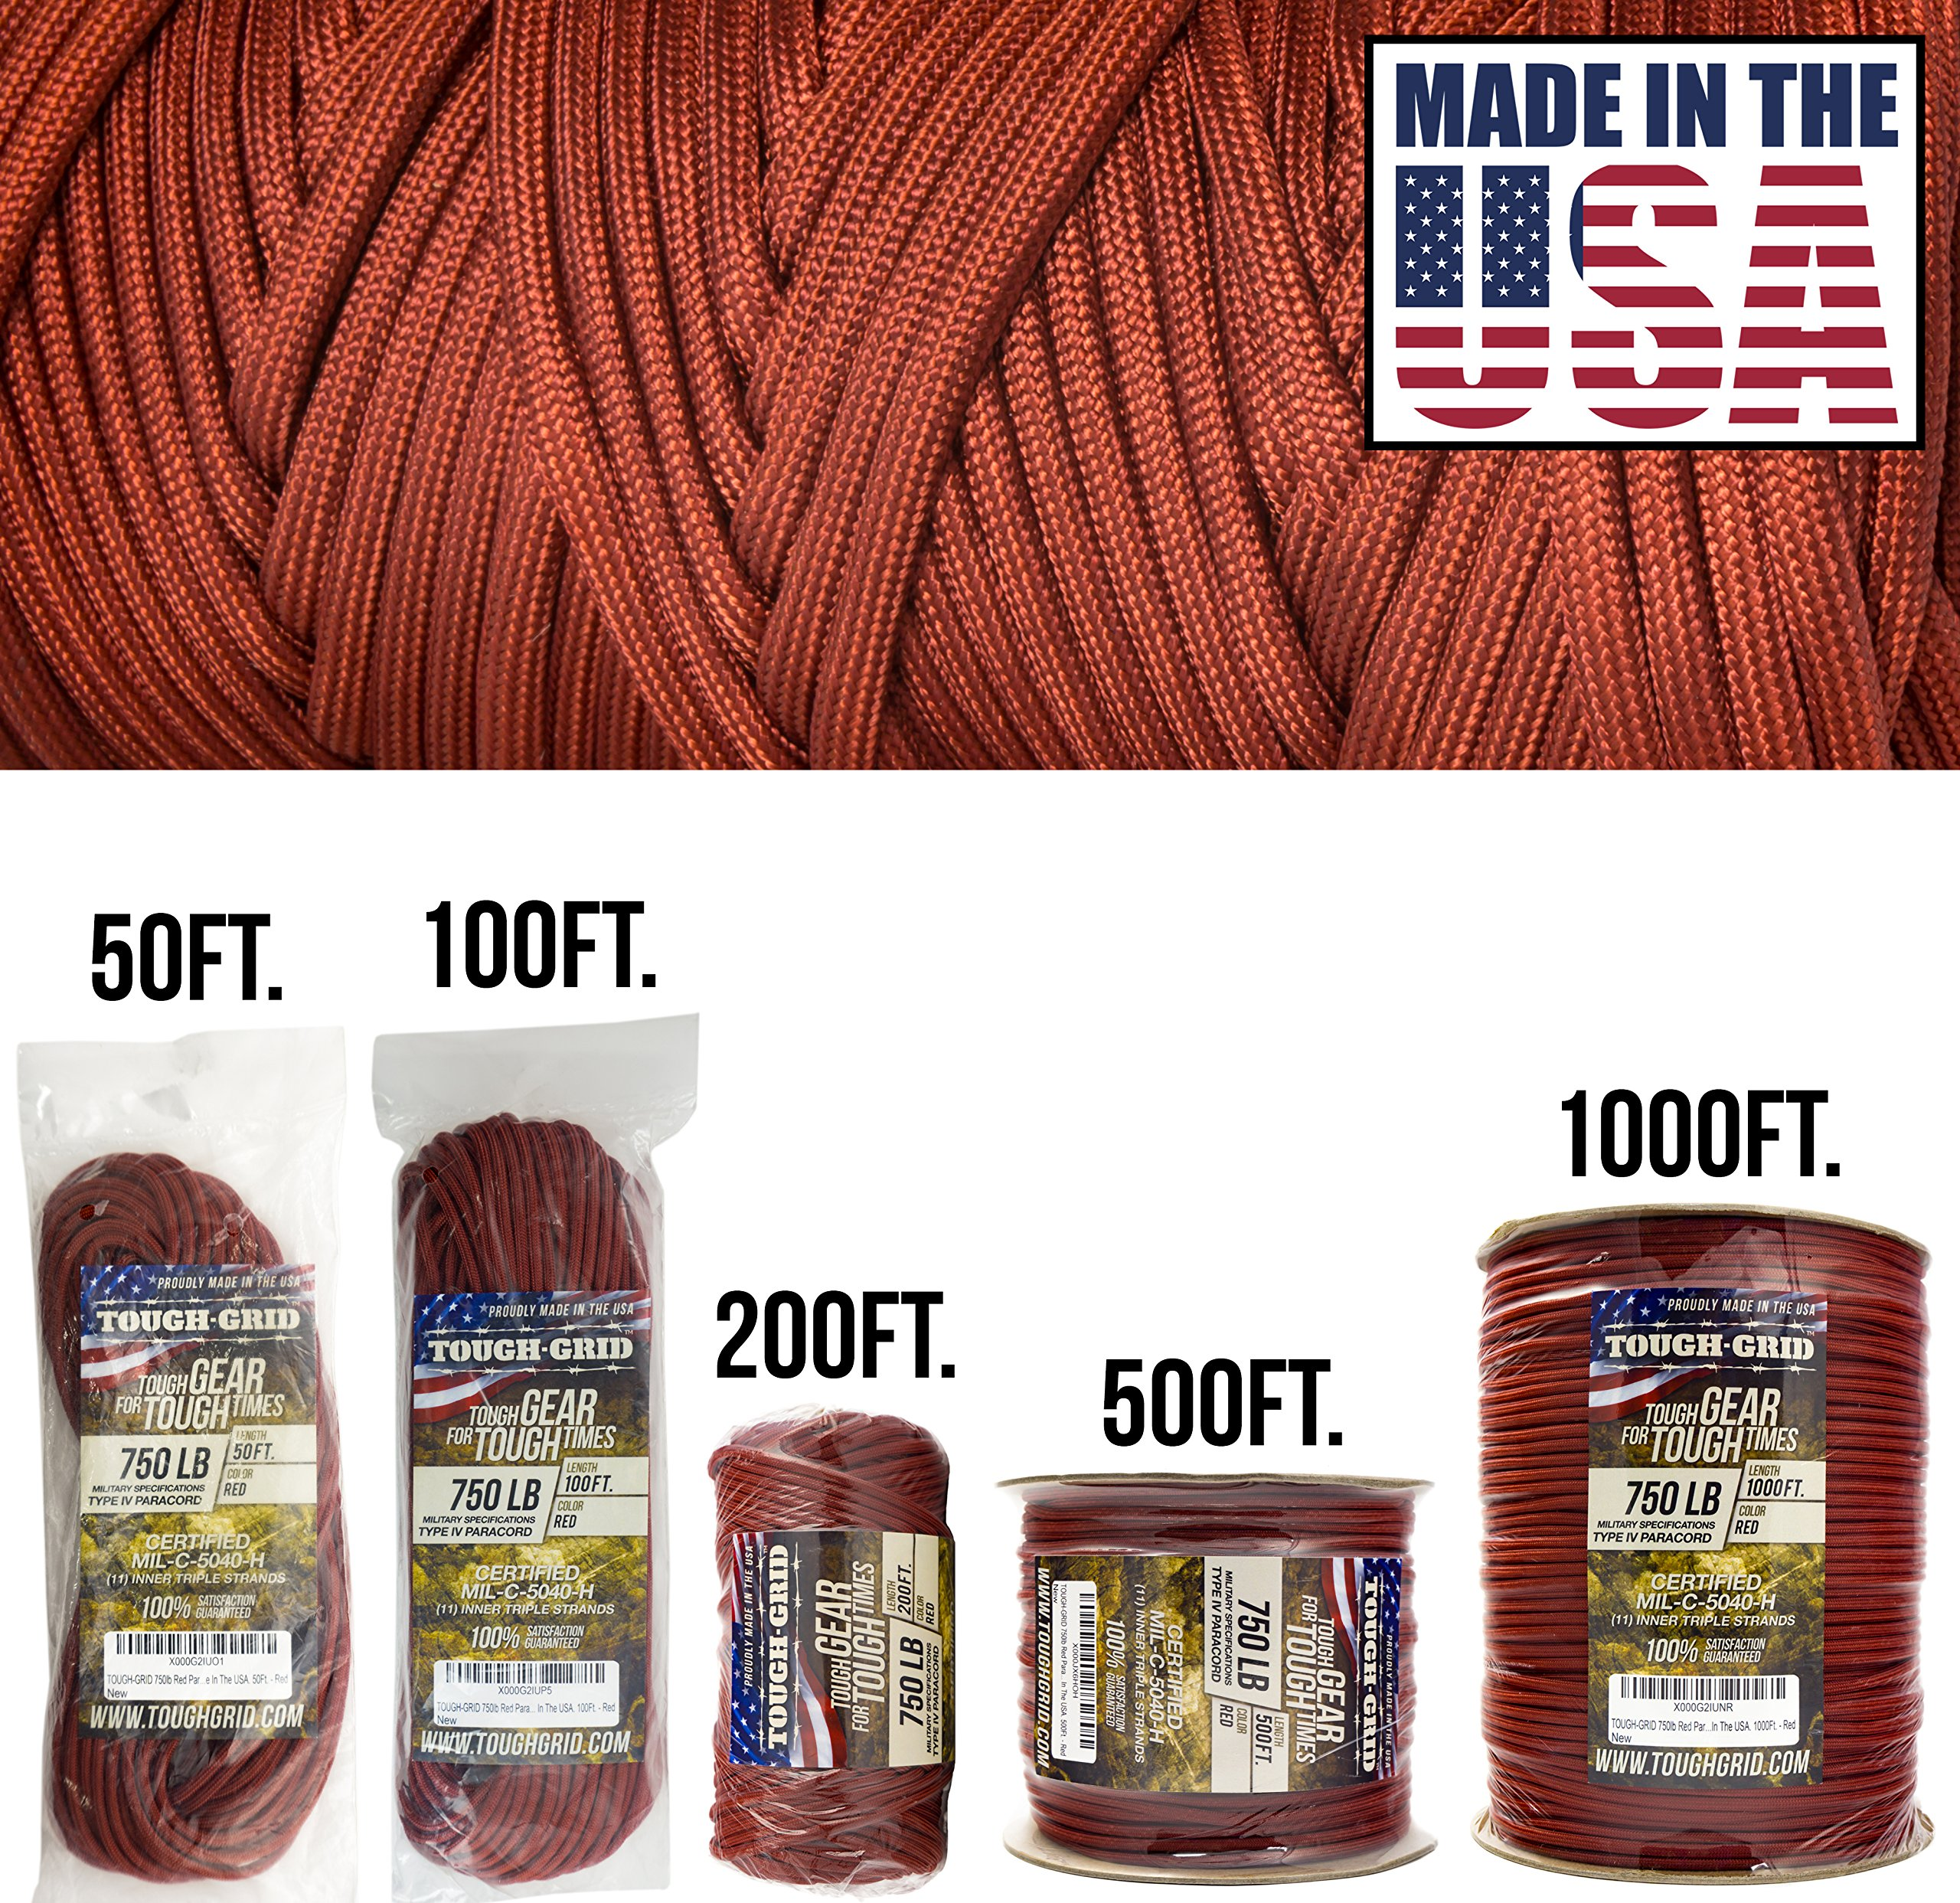 TOUGH-GRID 750lb Red Paracord/Parachute Cord - Genuine Mil Spec Type IV 750lb Paracord Used by The US Military (MIl-C-5040-H) - 100% Nylon - Made in The USA. 50Ft. - Red by TOUGH-GRID